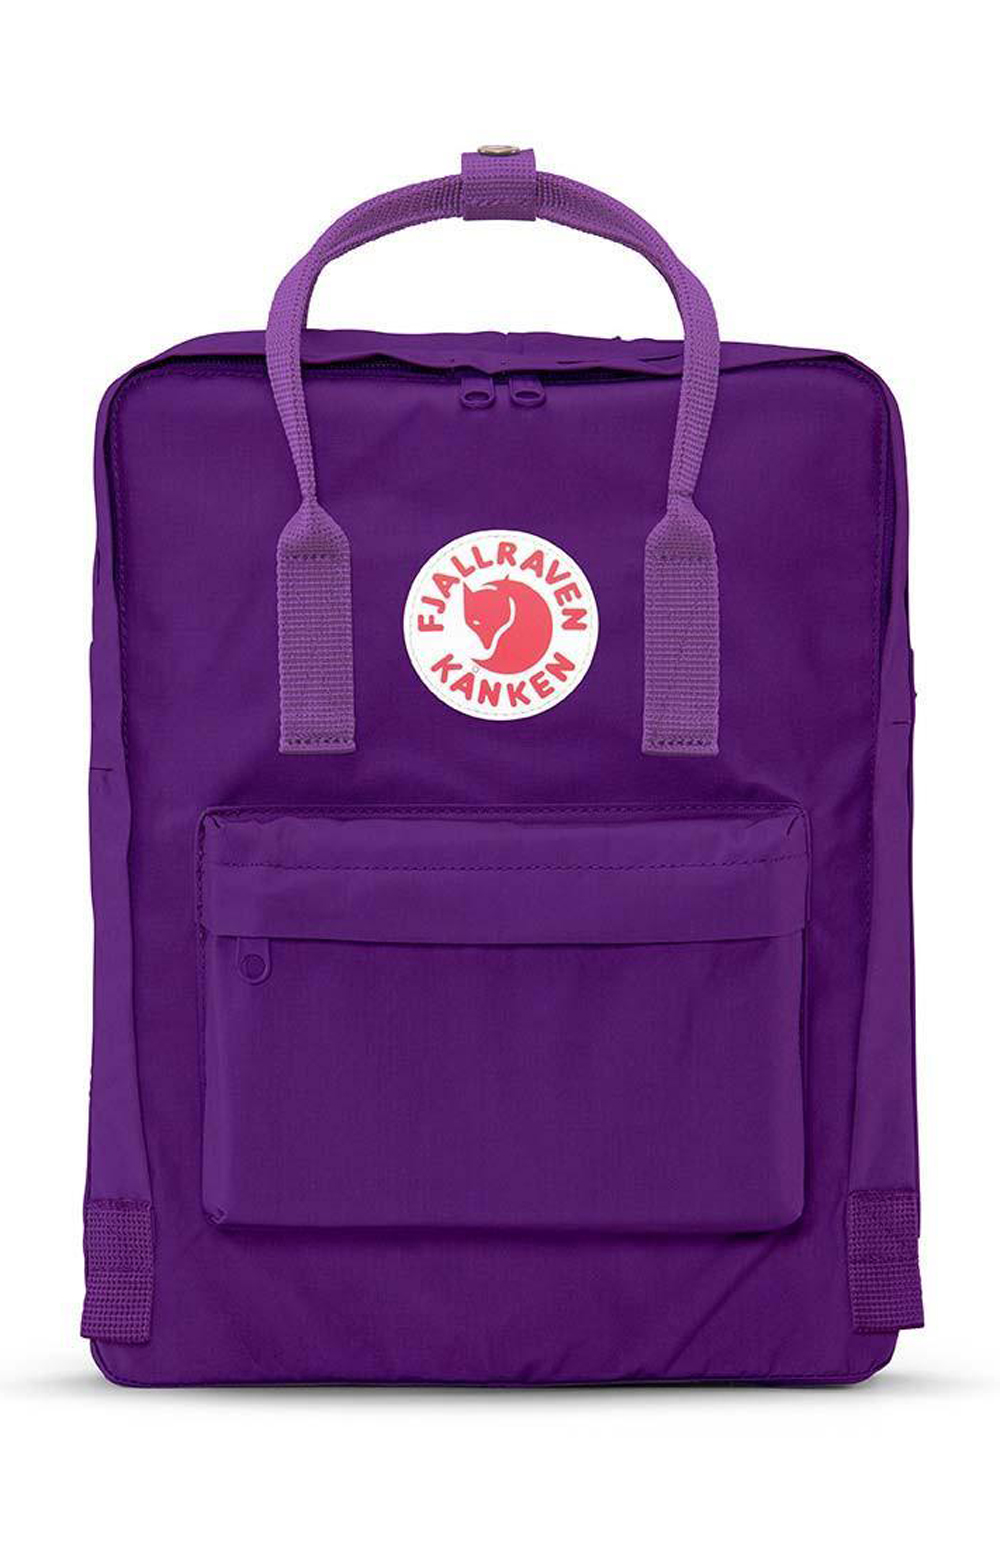 Kanken Backpack - Purple/Violet